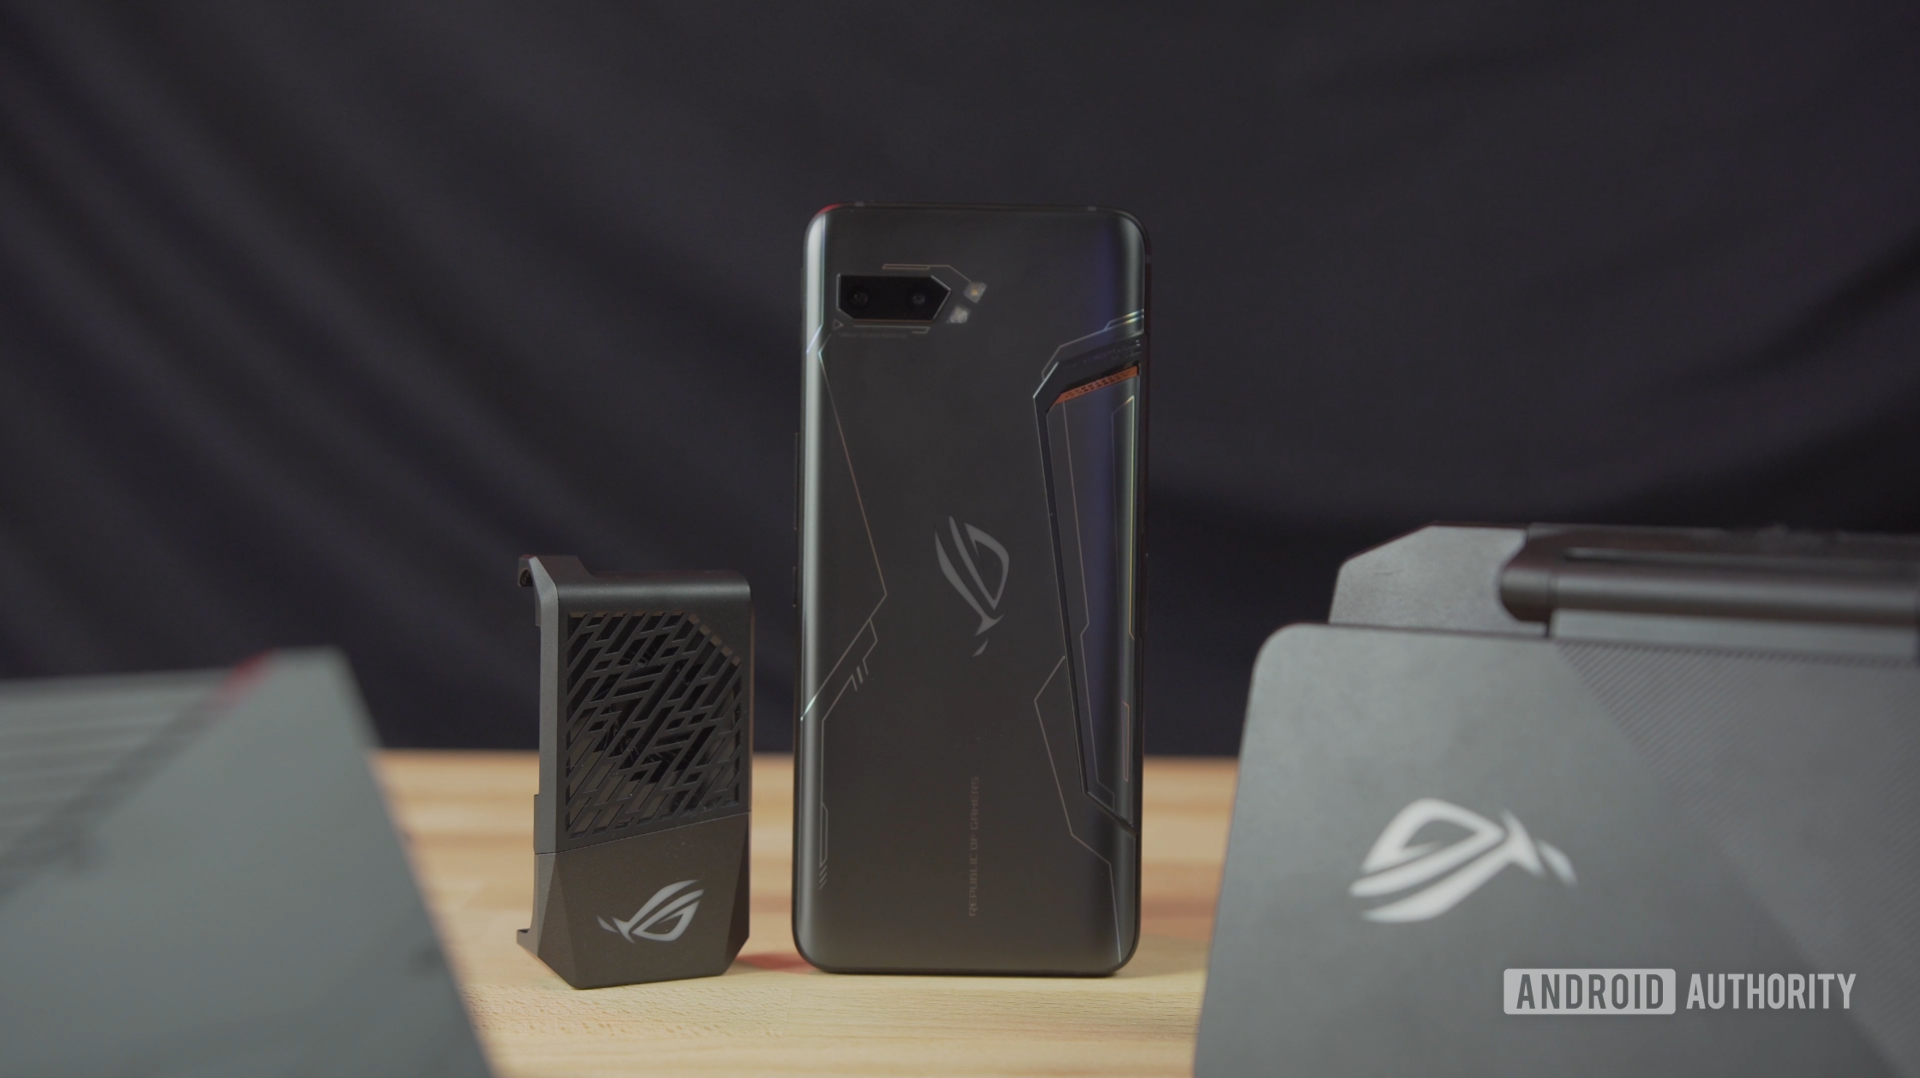 ROG Phone 2 with fan